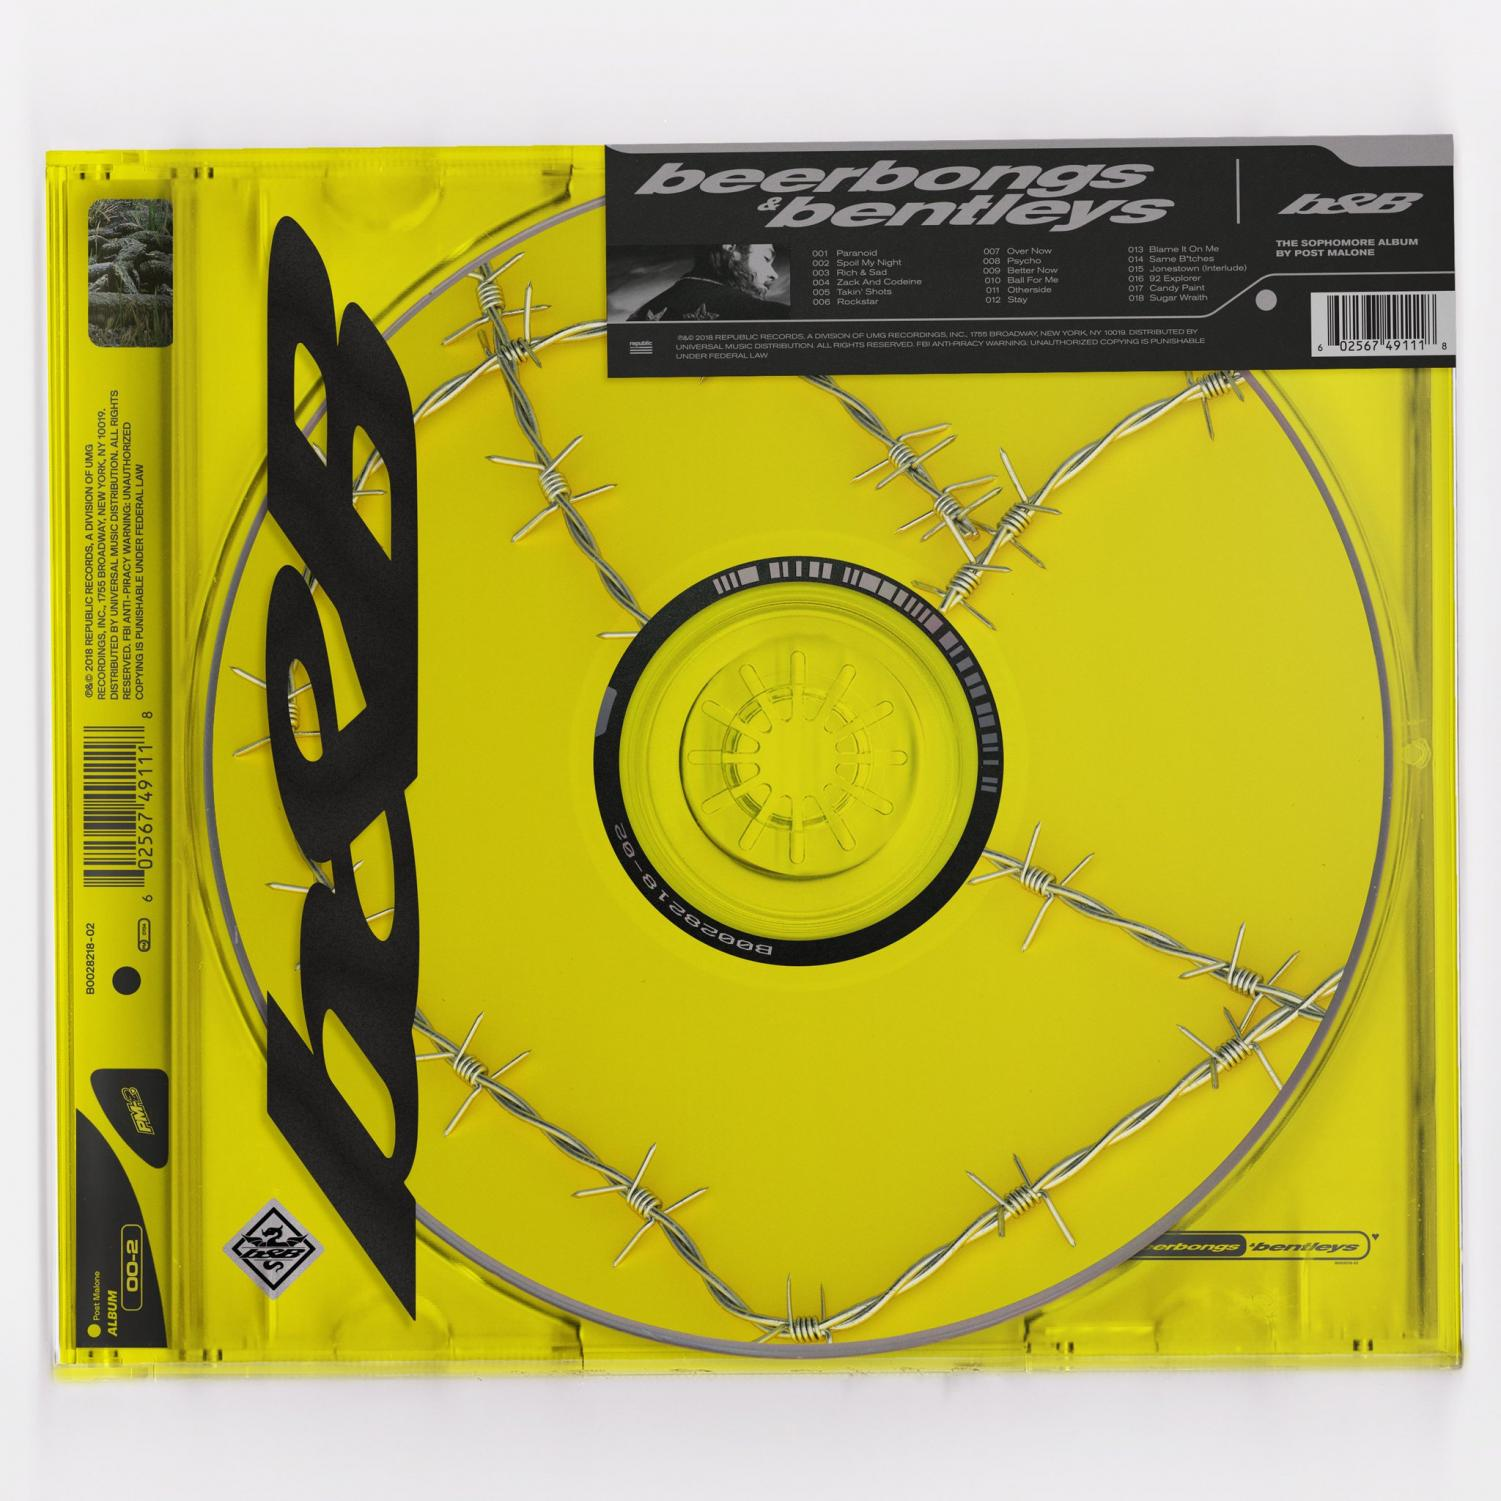 "The cover for ""beerbongs and bentleys"" is likely inspired by Kanye West's album ""Yeezus,"" of a picture of a CD. It has barbed wire wrapped around it with a yellow background, similar to the marketing style of this album."